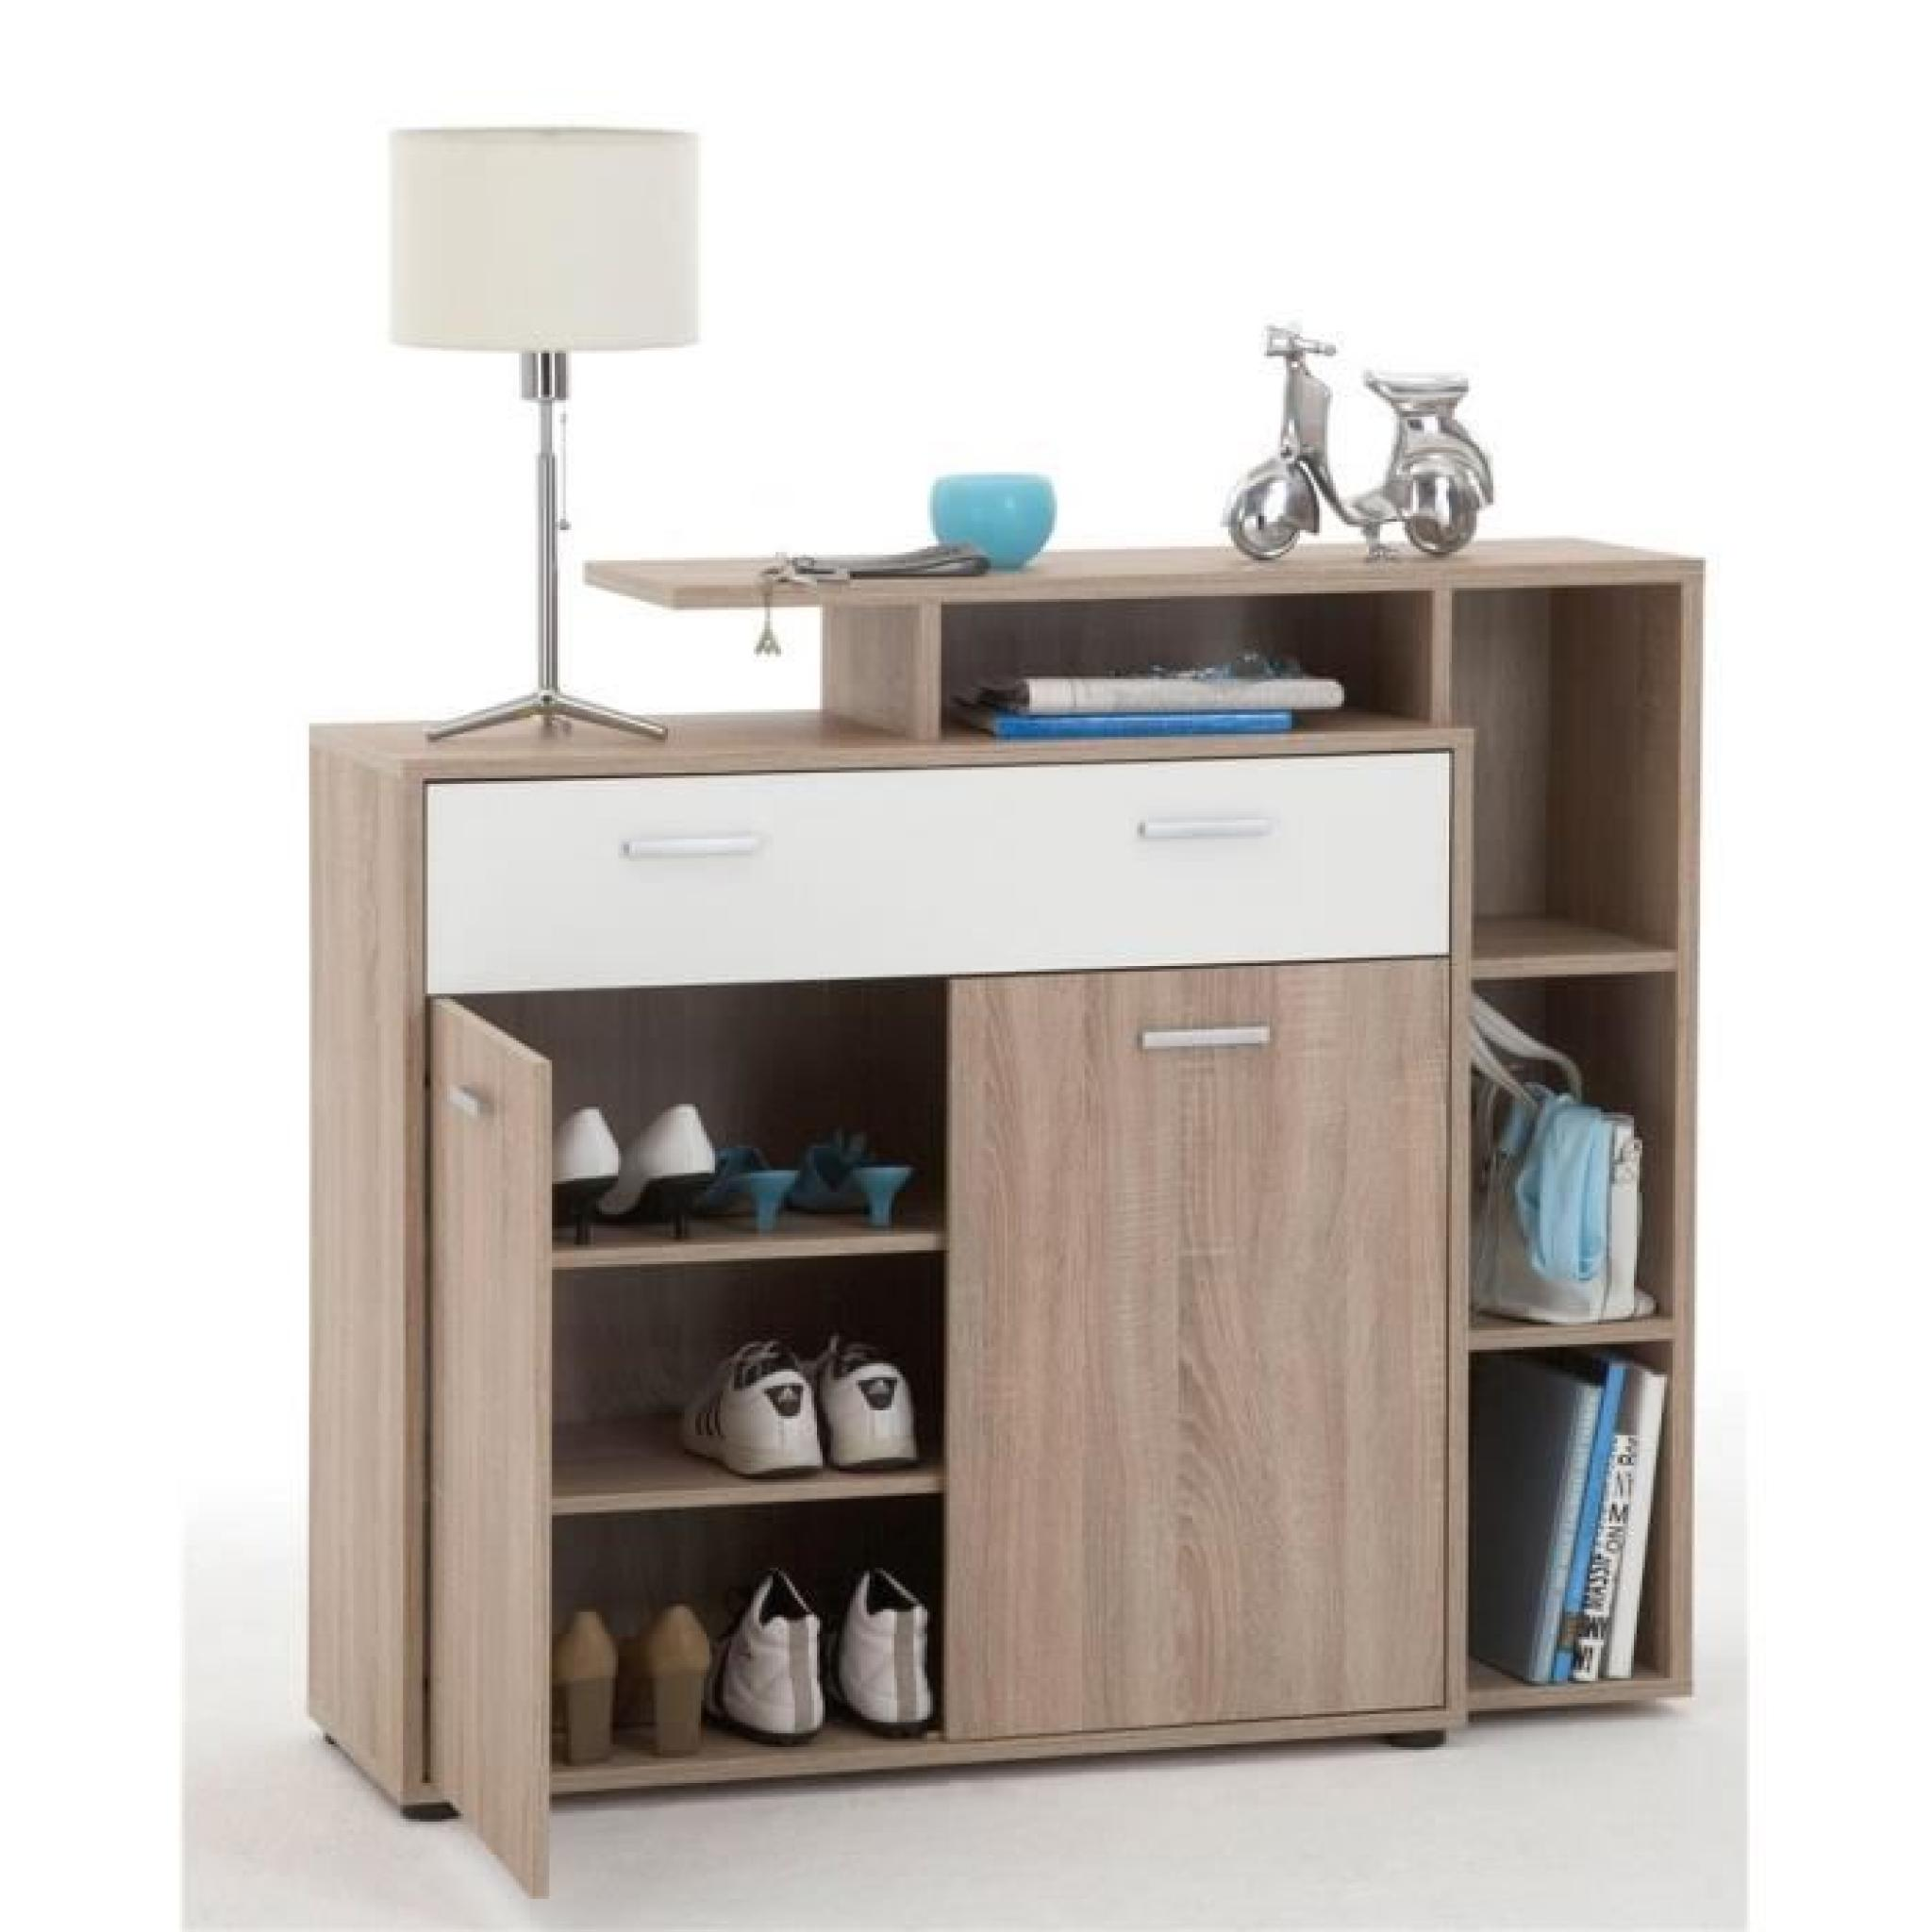 Armoire A Chaussure Alinea Armoire A Chaussure Fly Amazing Cool Lit Escamotable